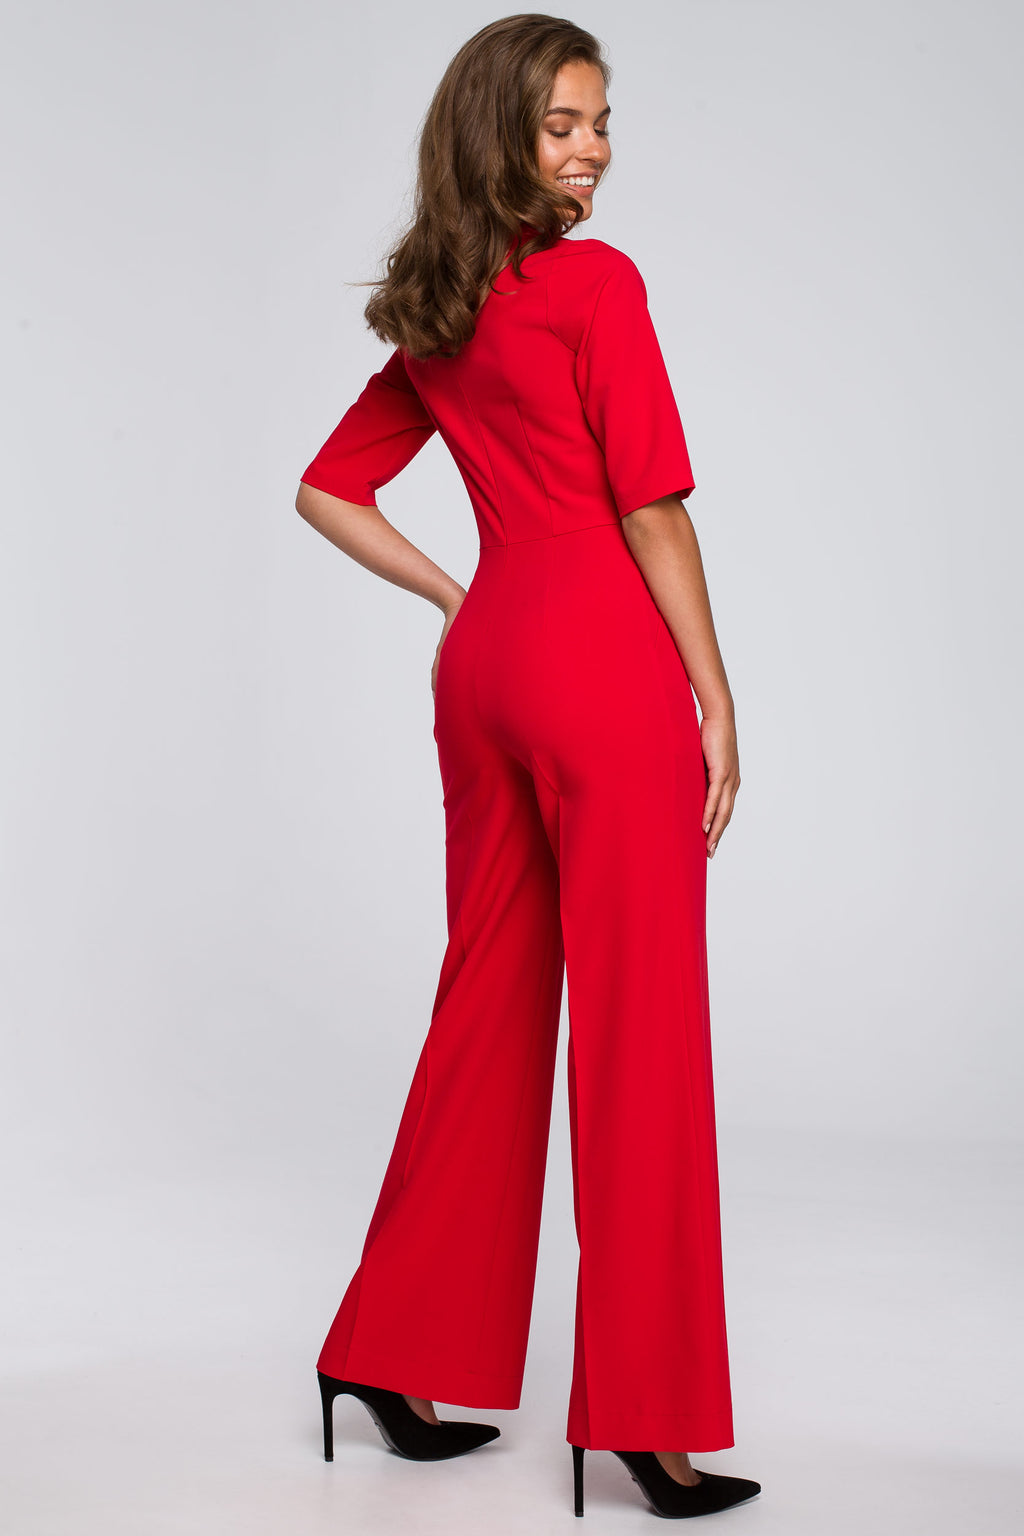 Red Wide Leg Jumpsuit With Tied Neck - So Chic Boutique